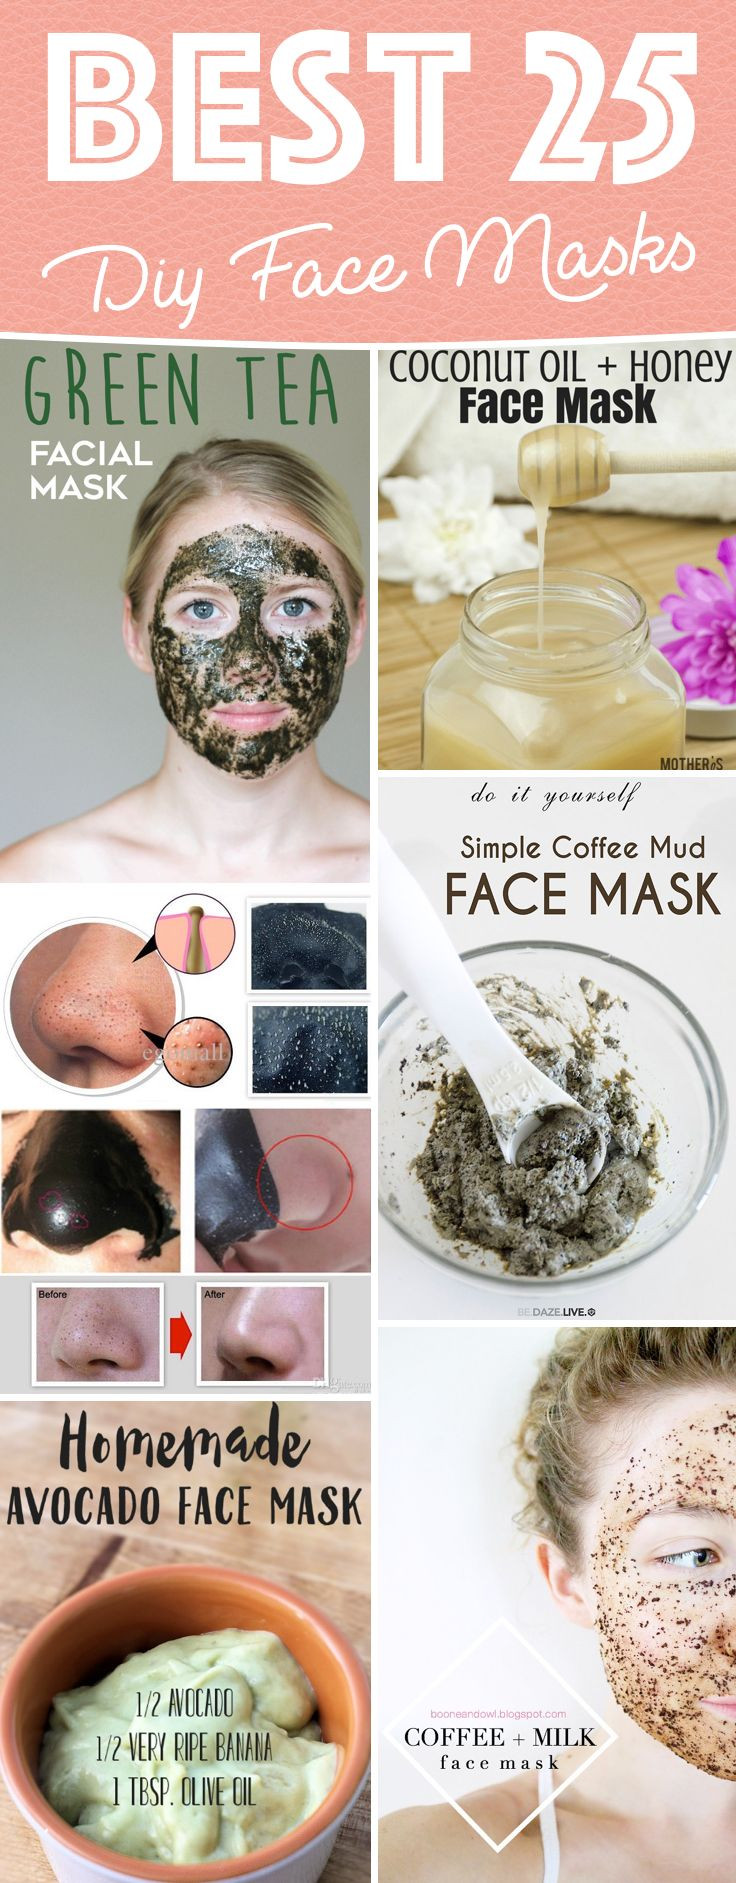 Best ideas about Easy DIY Face Masks . Save or Pin 25 best ideas about Homemade Face Masks on Pinterest Now.